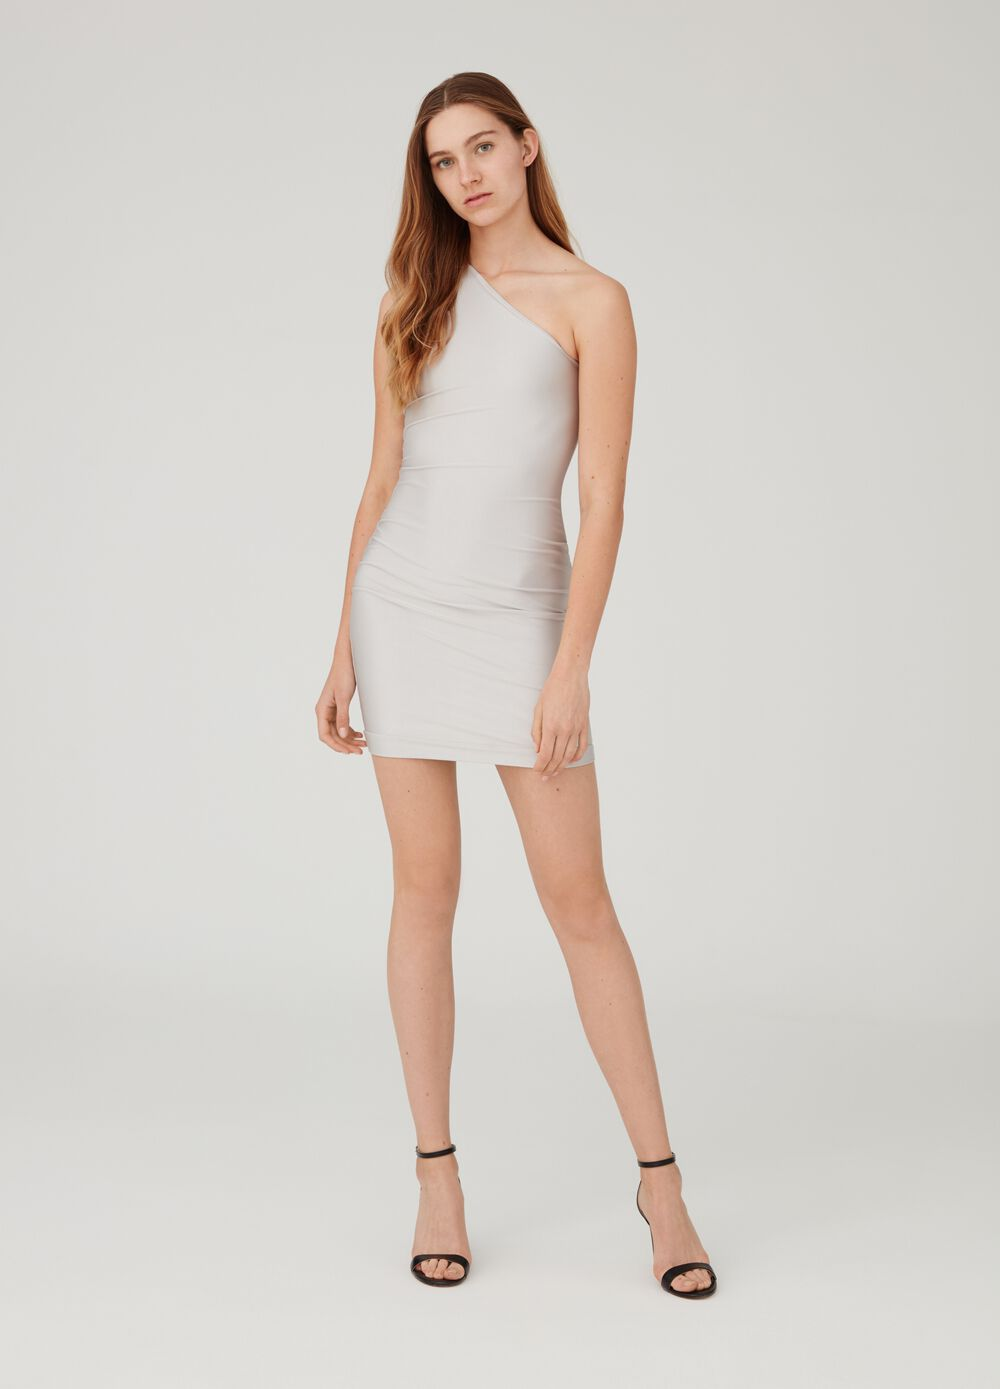 K+K for OVS stretch tube dress with double shoulder strap